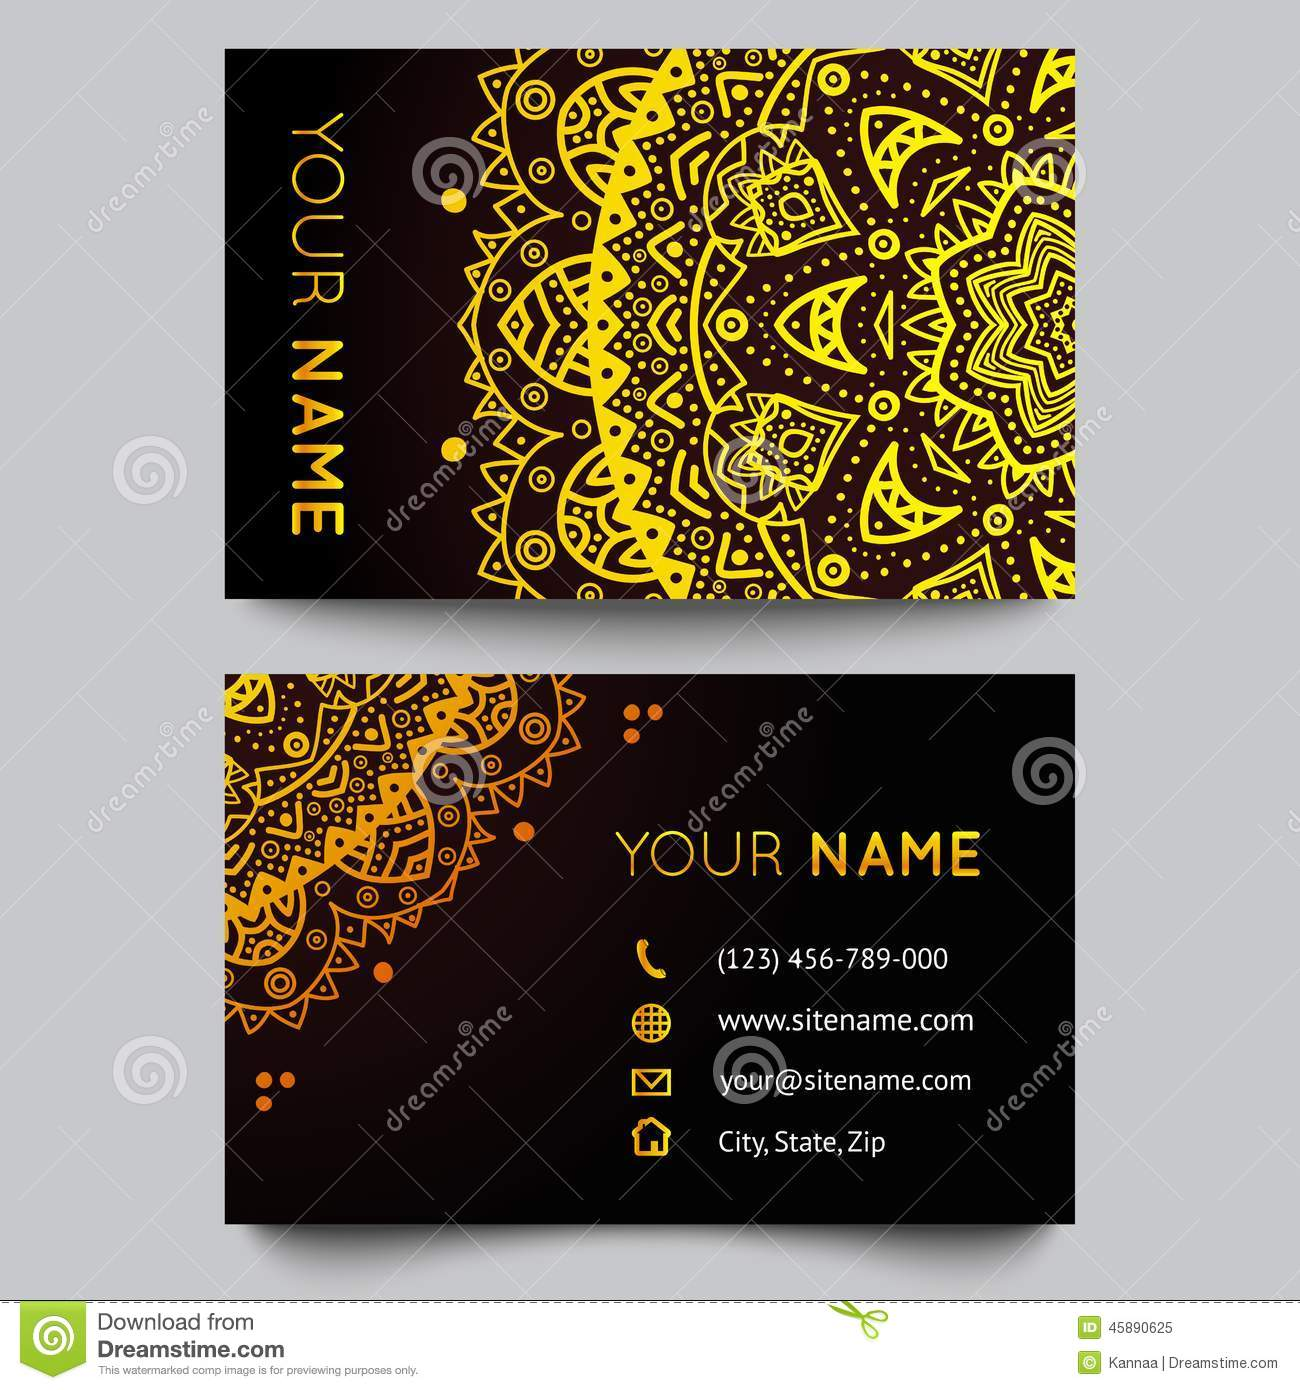 Business card template black and golden beauty stock vector business card template black and golden beauty cheaphphosting Images